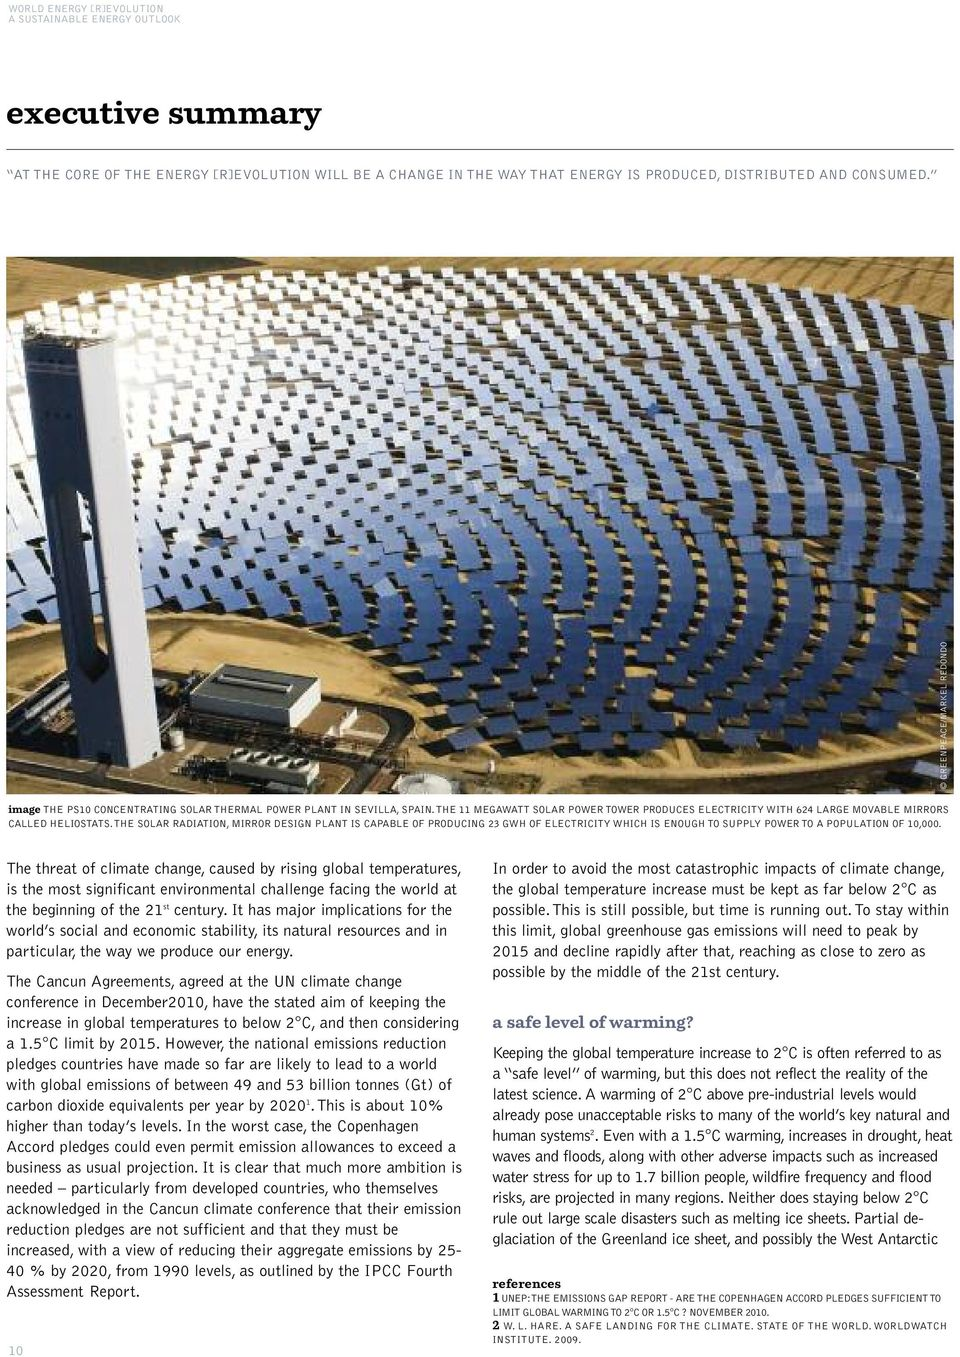 THE 11 MEGAWATT SOLAR POWER TOWER PRODUCES ELECTRICITY WITH 624 LARGE MOVABLE MIRRORS CALLED HELIOSTATS.